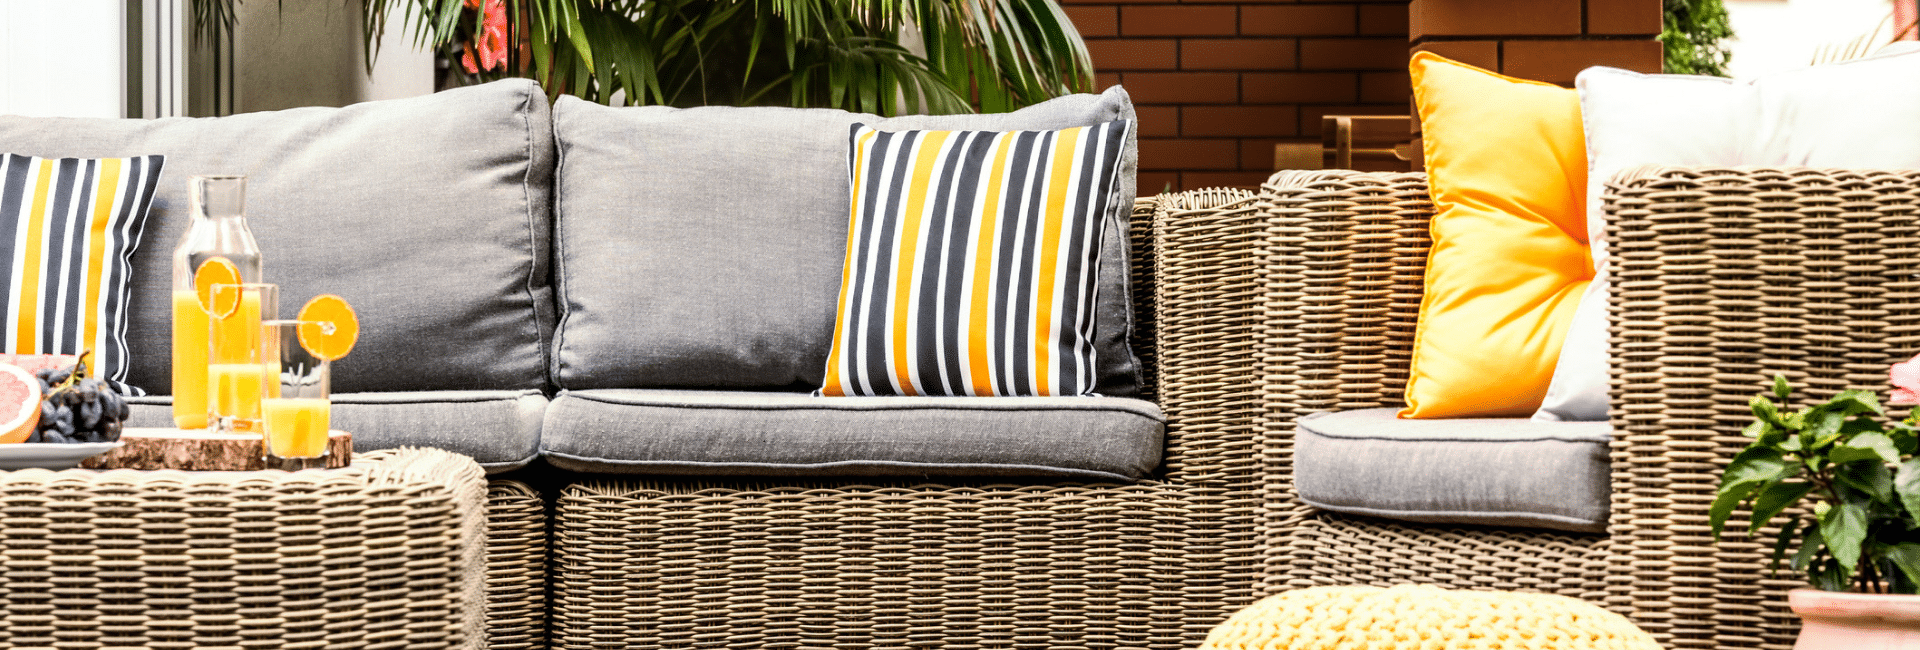 yellow and gray outdoor furniture sofa table and chair